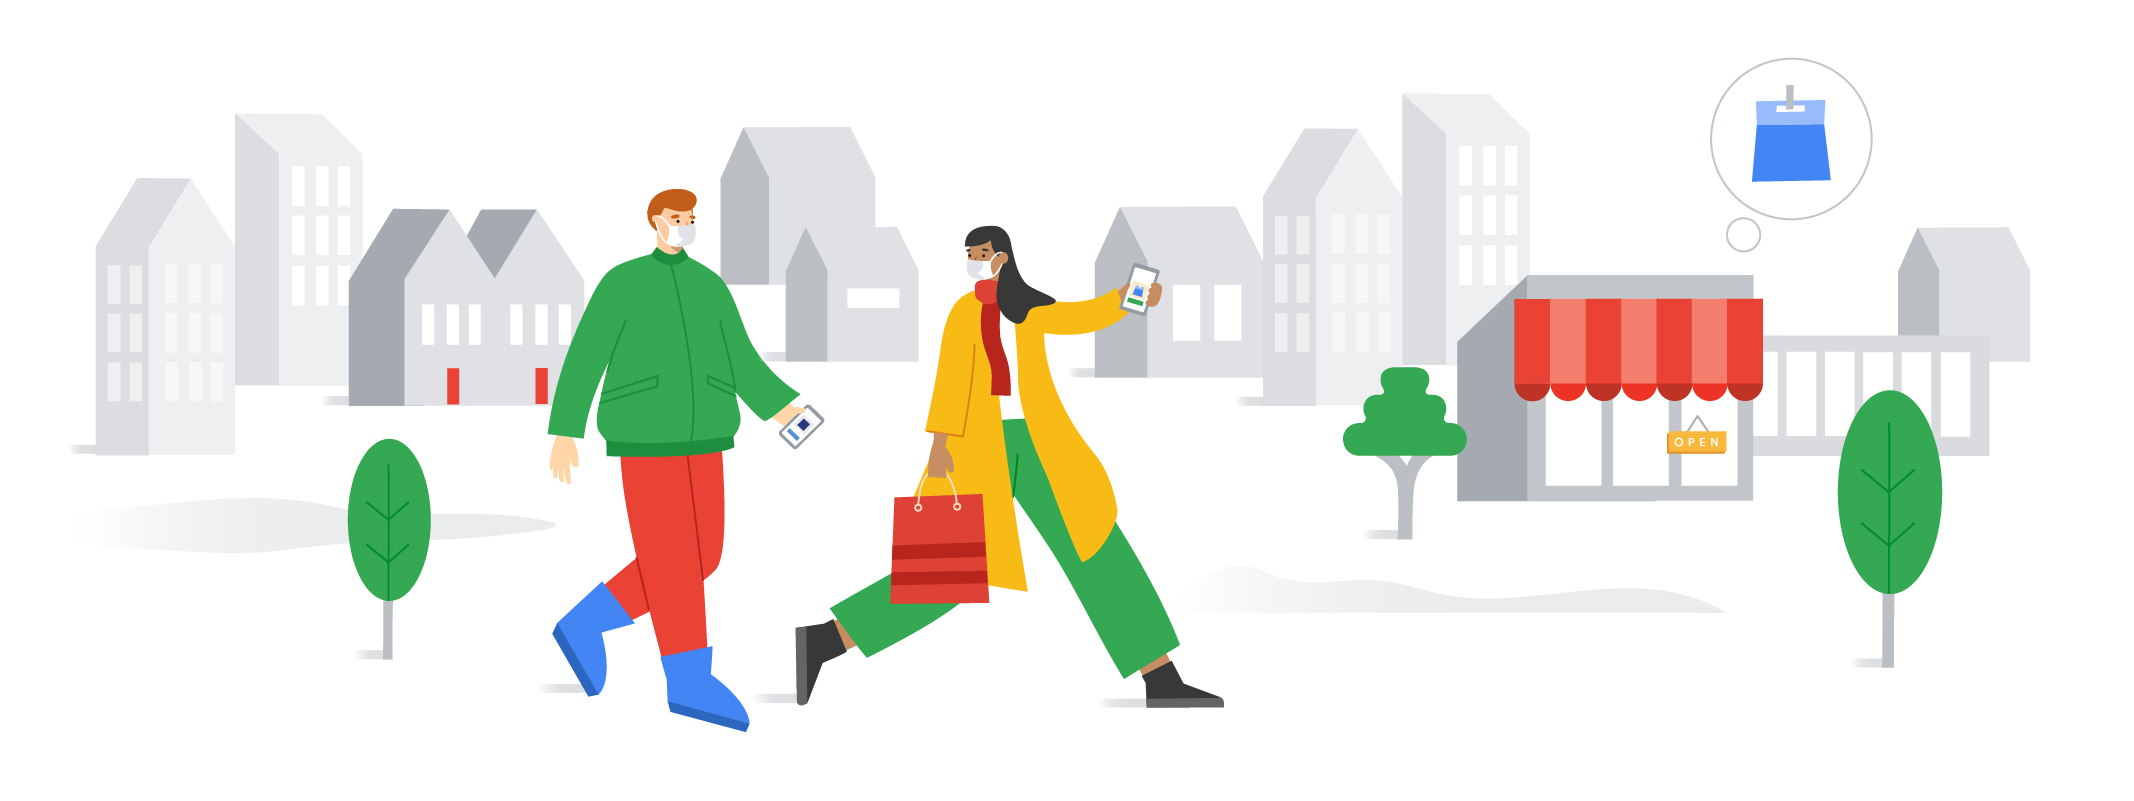 Retail trends of 2021: Ethical Shopping and Conscious Consumerism